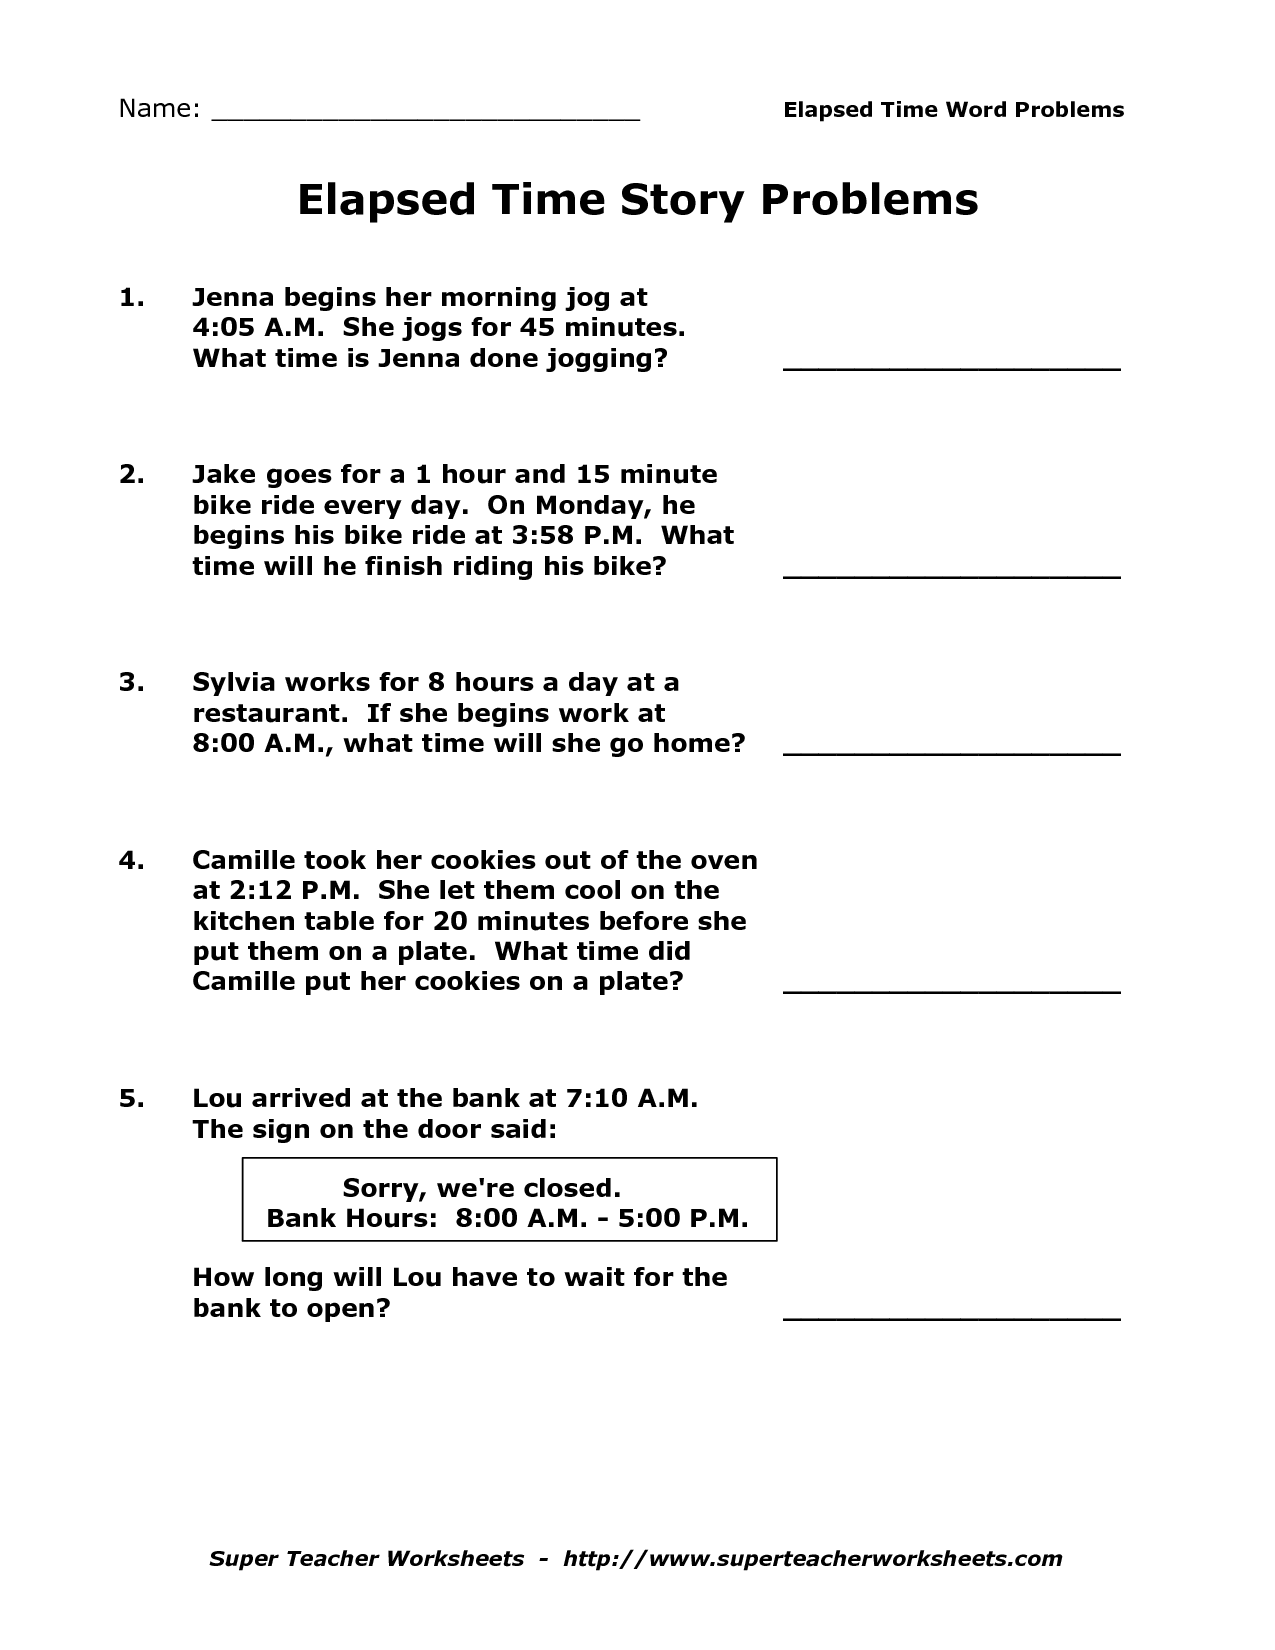 15 Best Images Of 3rd Grade Elapsed Time Word Problems Worksheets